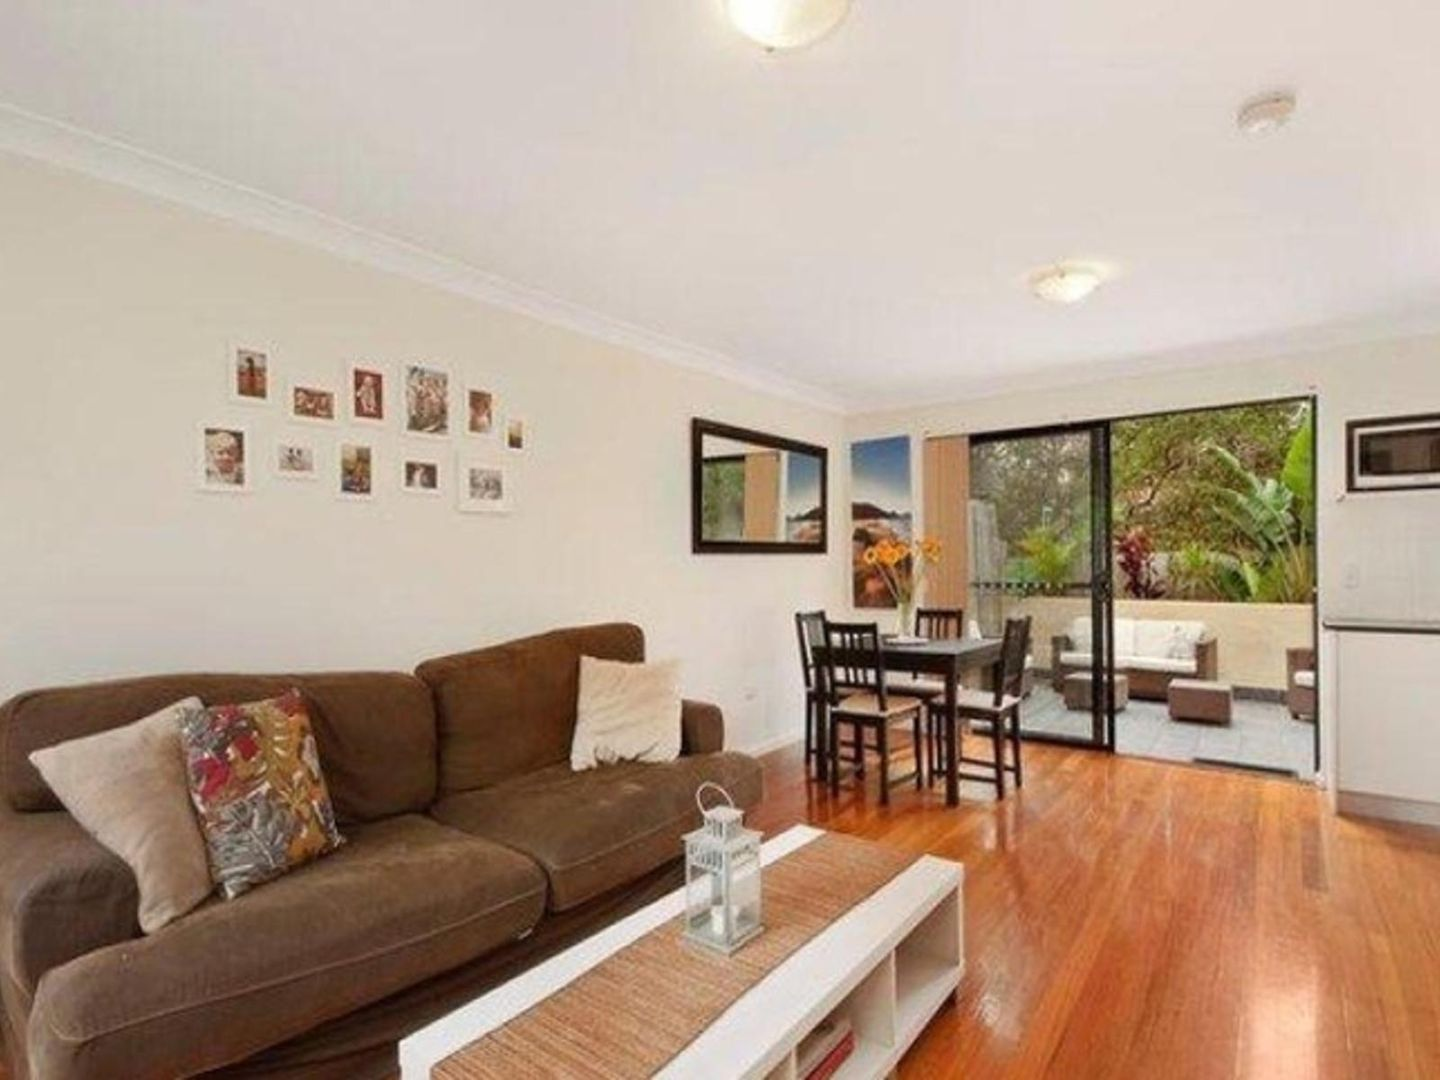 4/1 Midway Drive, Maroubra NSW 2035, Image 0